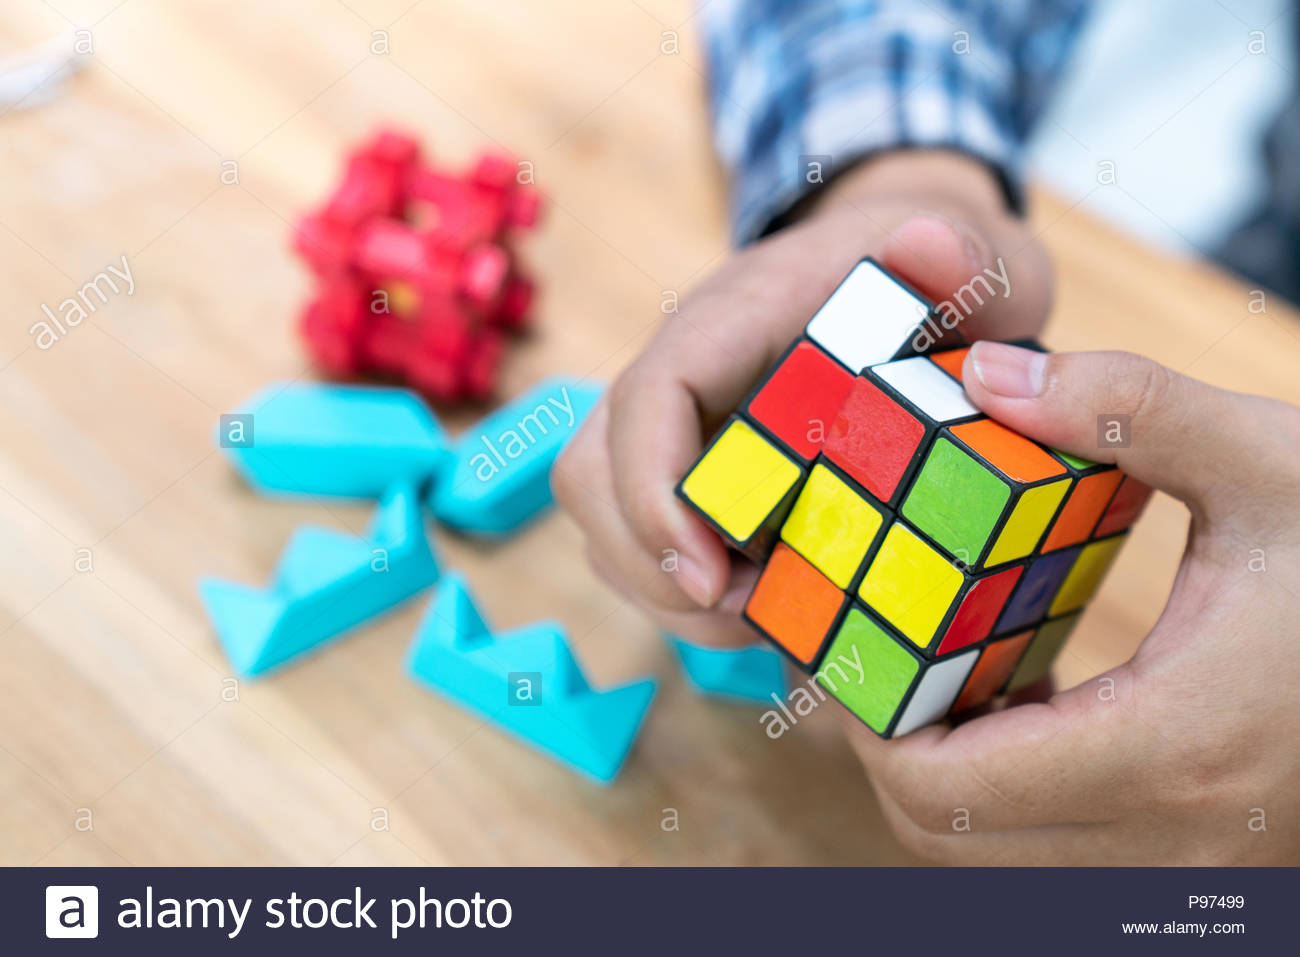 BANGKOK, THAILAND - April 6, 2018: Rubik's cube puzzle In the hands of men. Cube was invented by a Hungarian architect Erno Rubik in 1974. - Stock Image